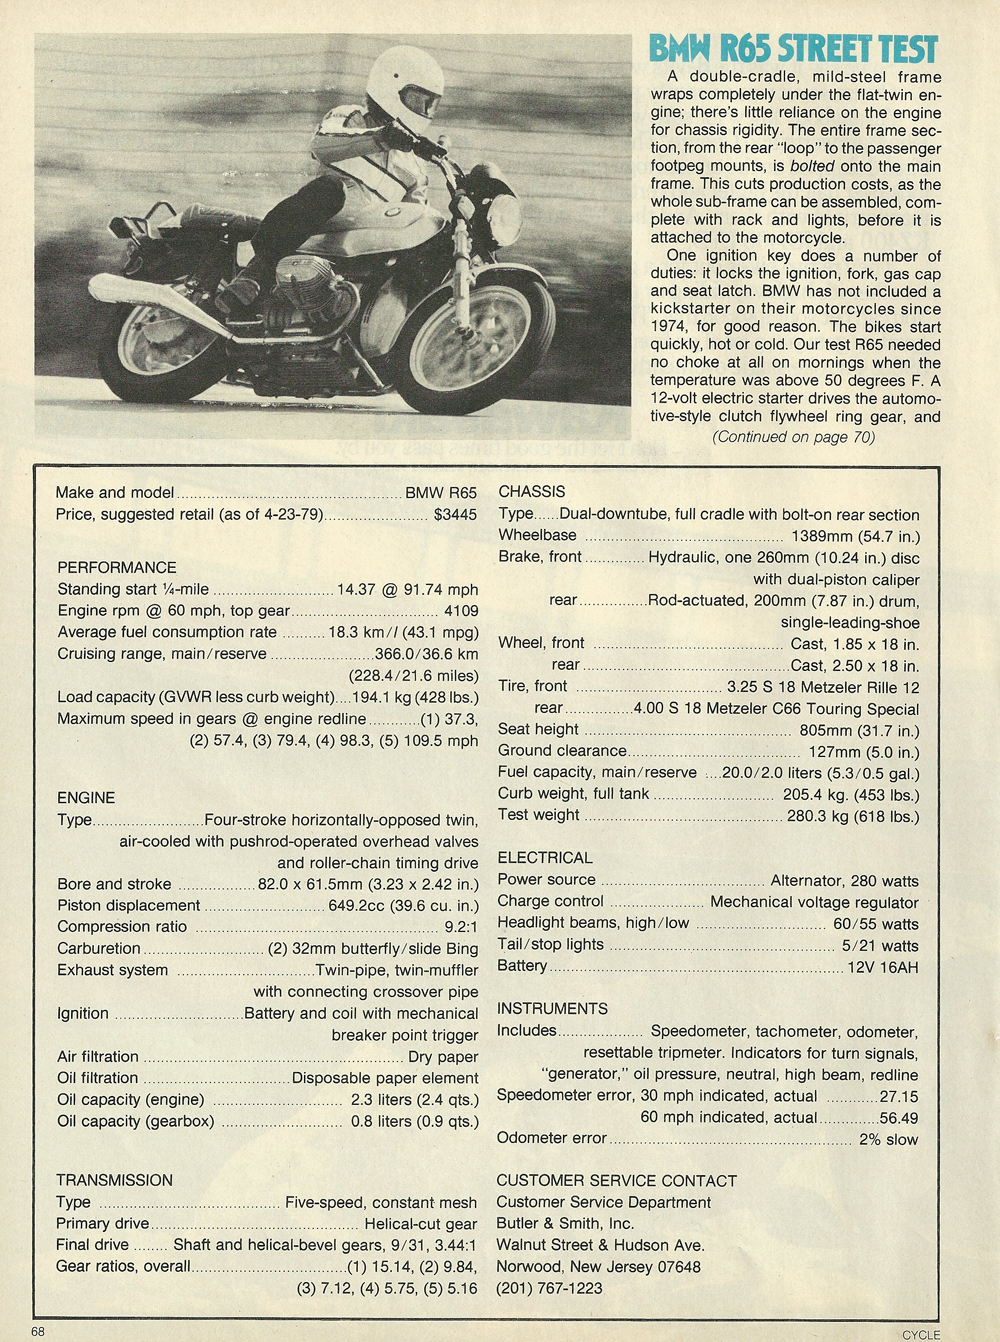 1979 BMW R65 road test 7.jpg